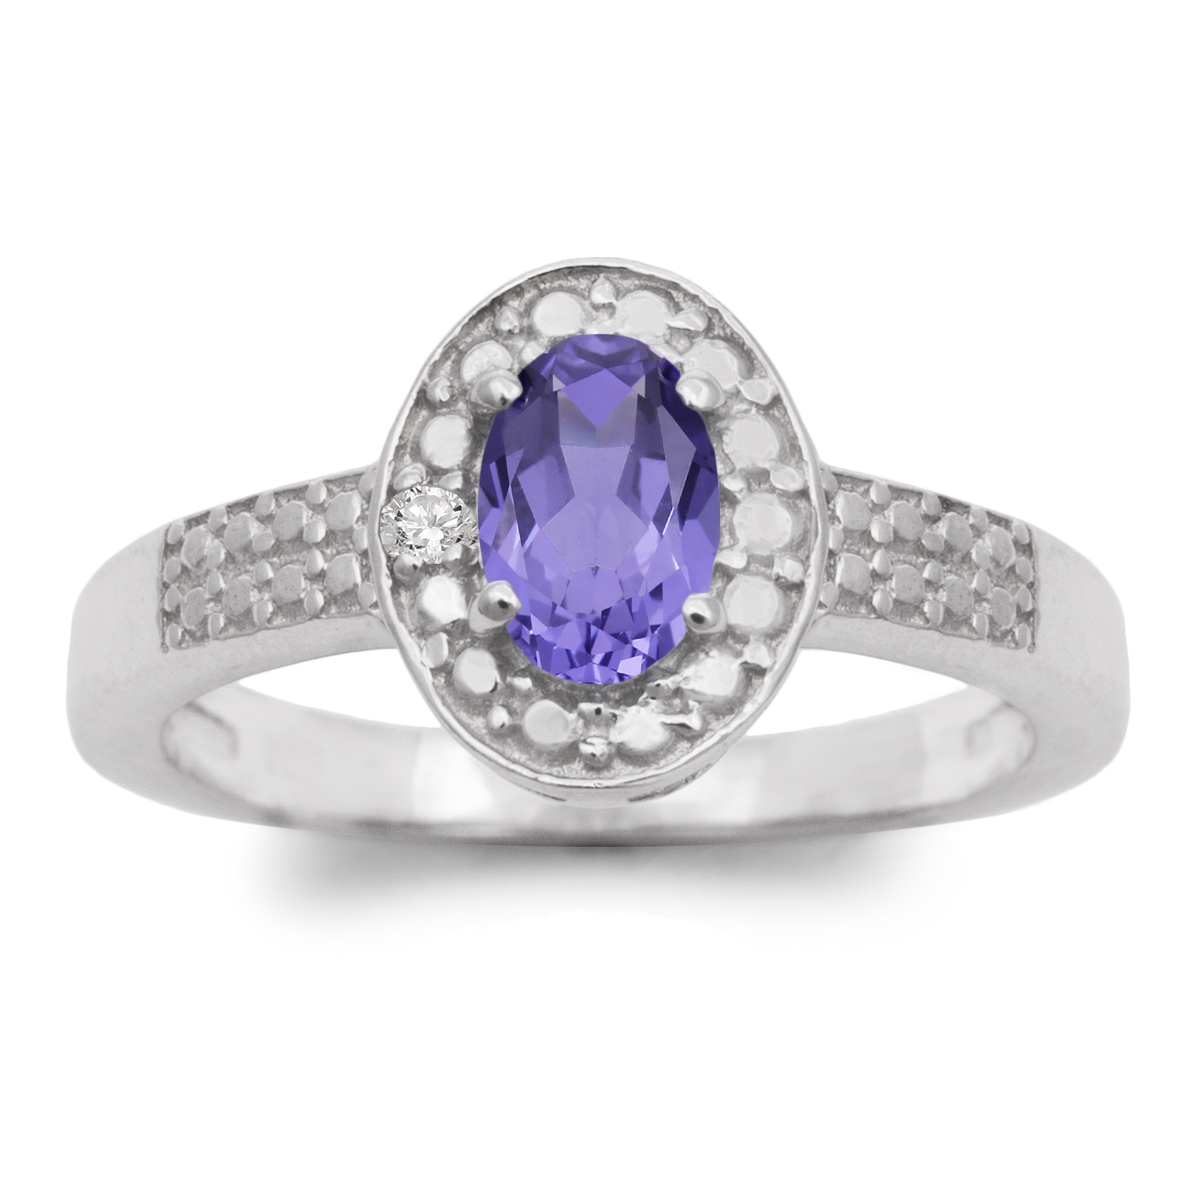 white cheap cathedral with this ring or created sparkles looking gaudy true set is its so size engagement lovely happy sapphire to bridal isnt and rings interchangeable italo